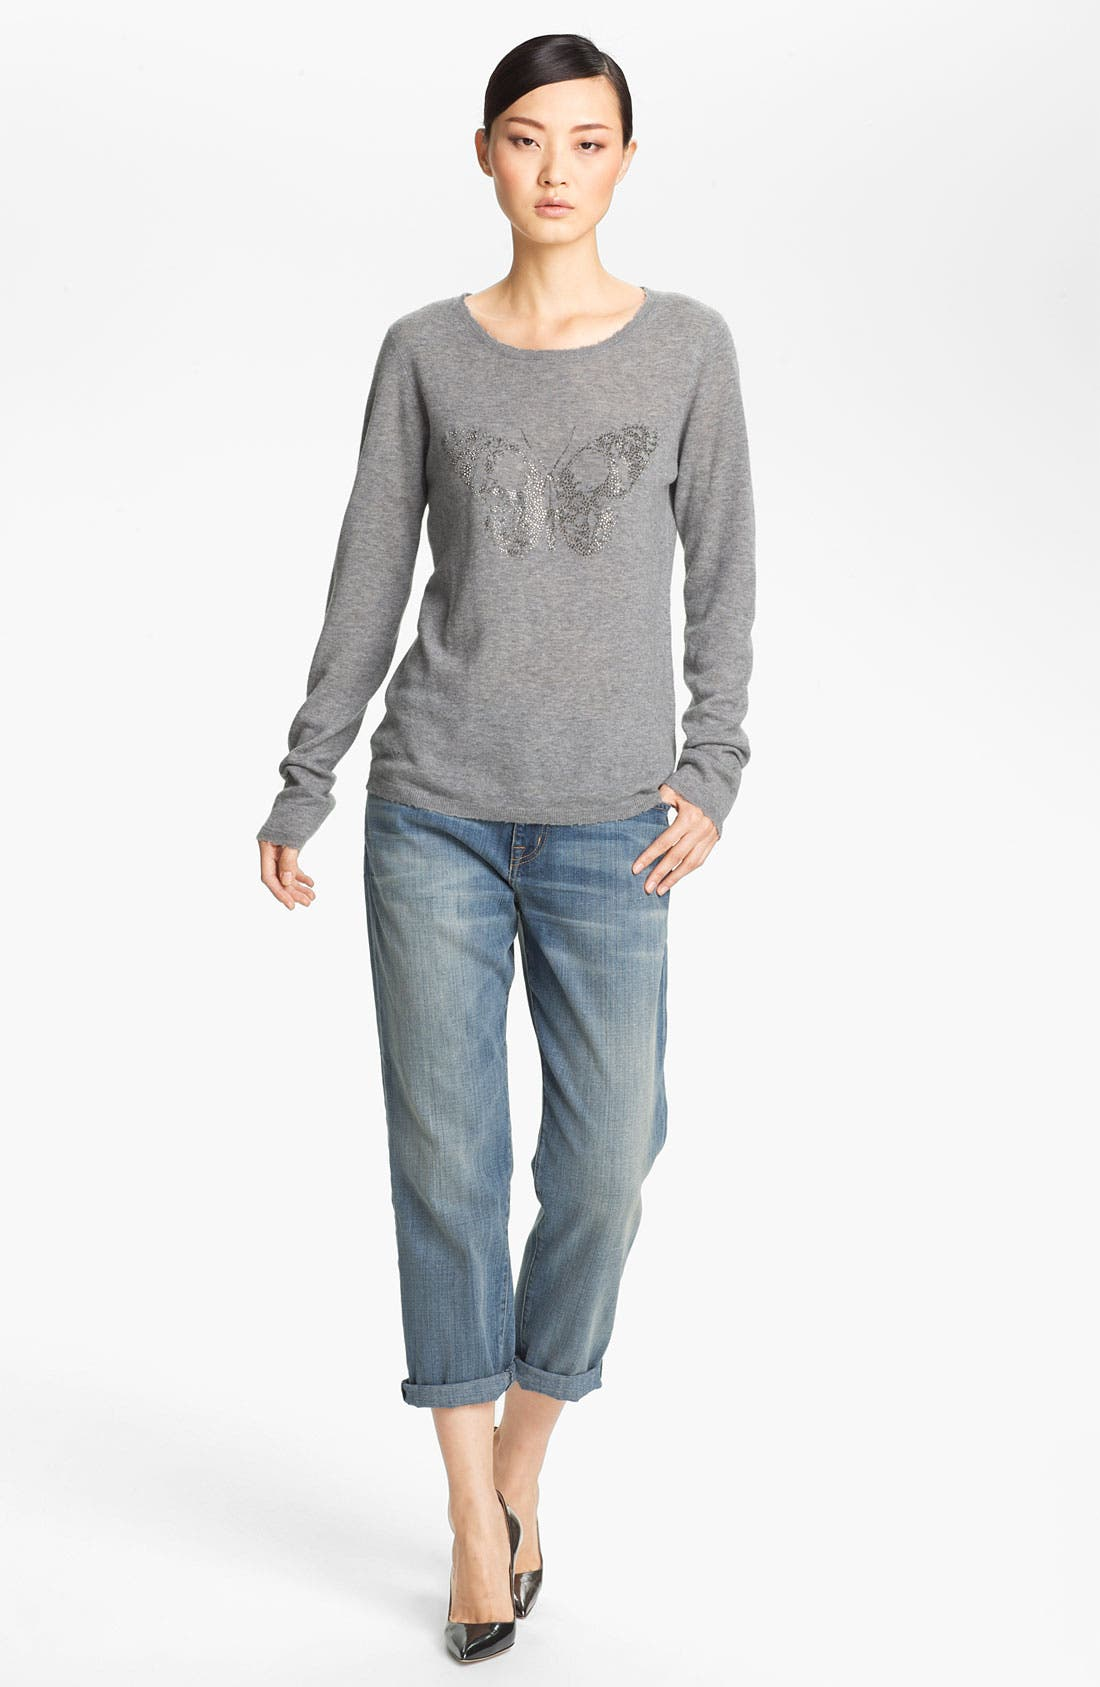 Alternate Image 1 Selected - Zadig & Voltaire Butterfly Print Cashmere Sweater